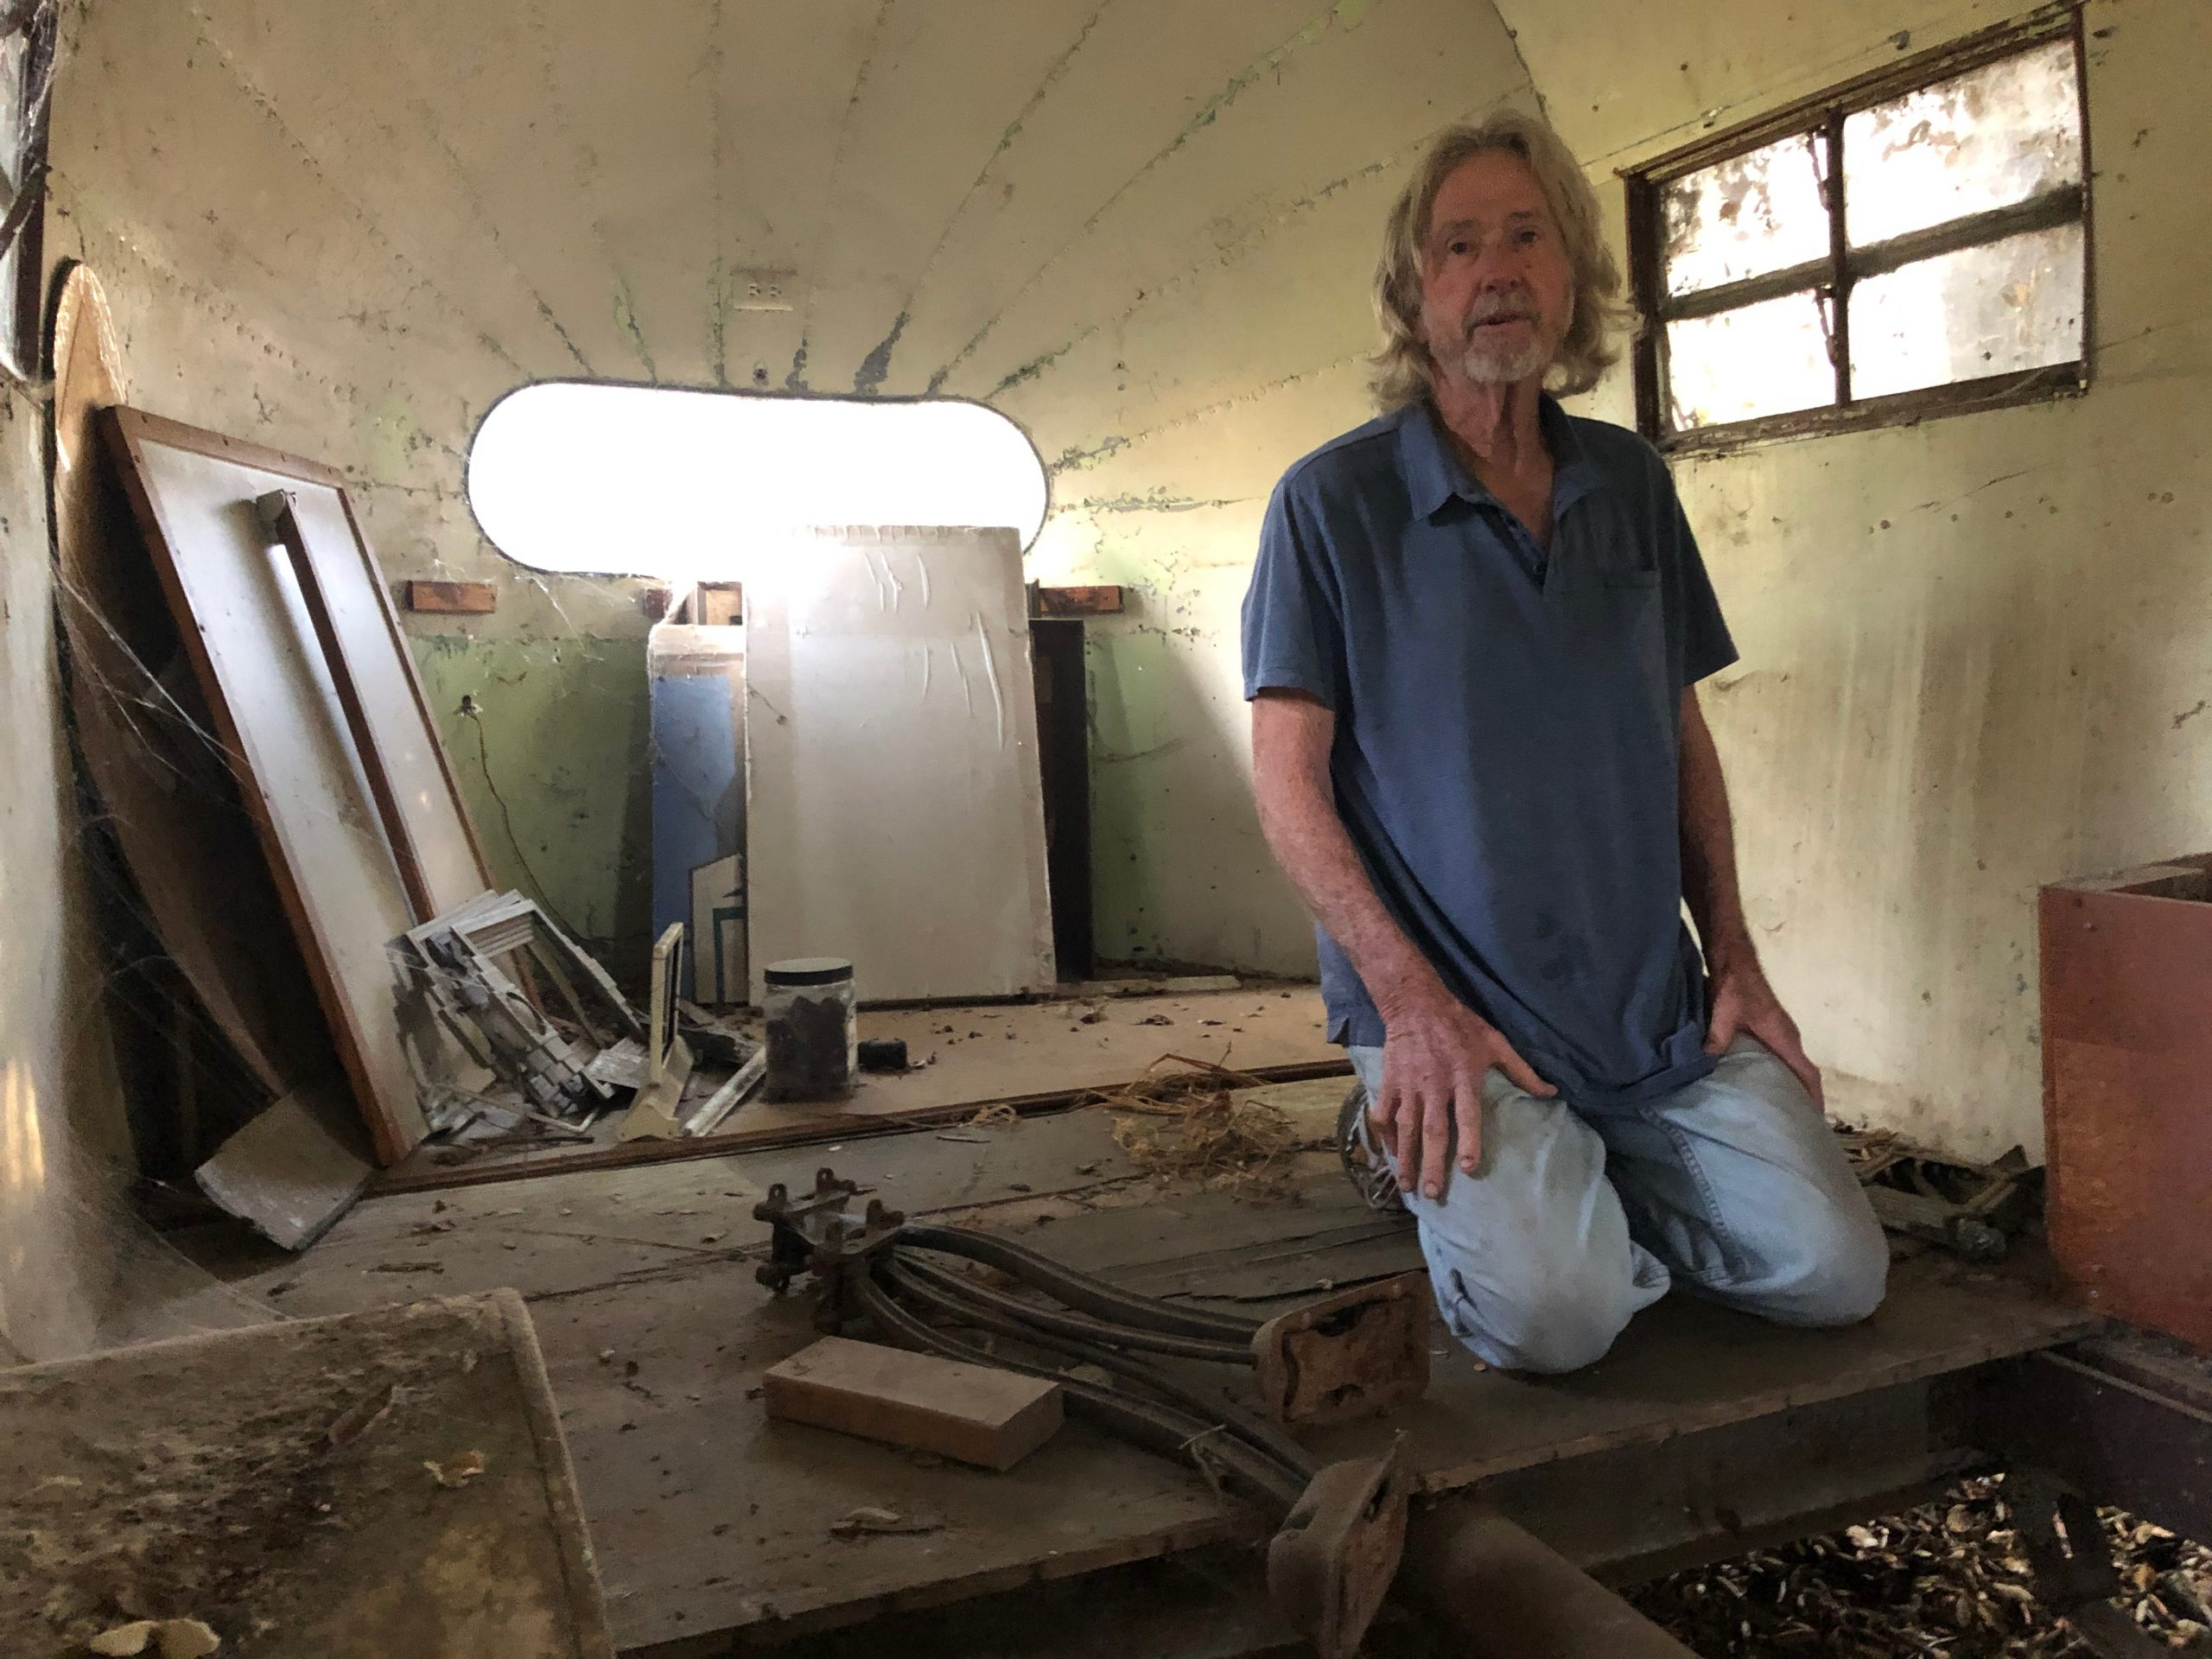 tom donahue kneels inside of vintage airstream shell